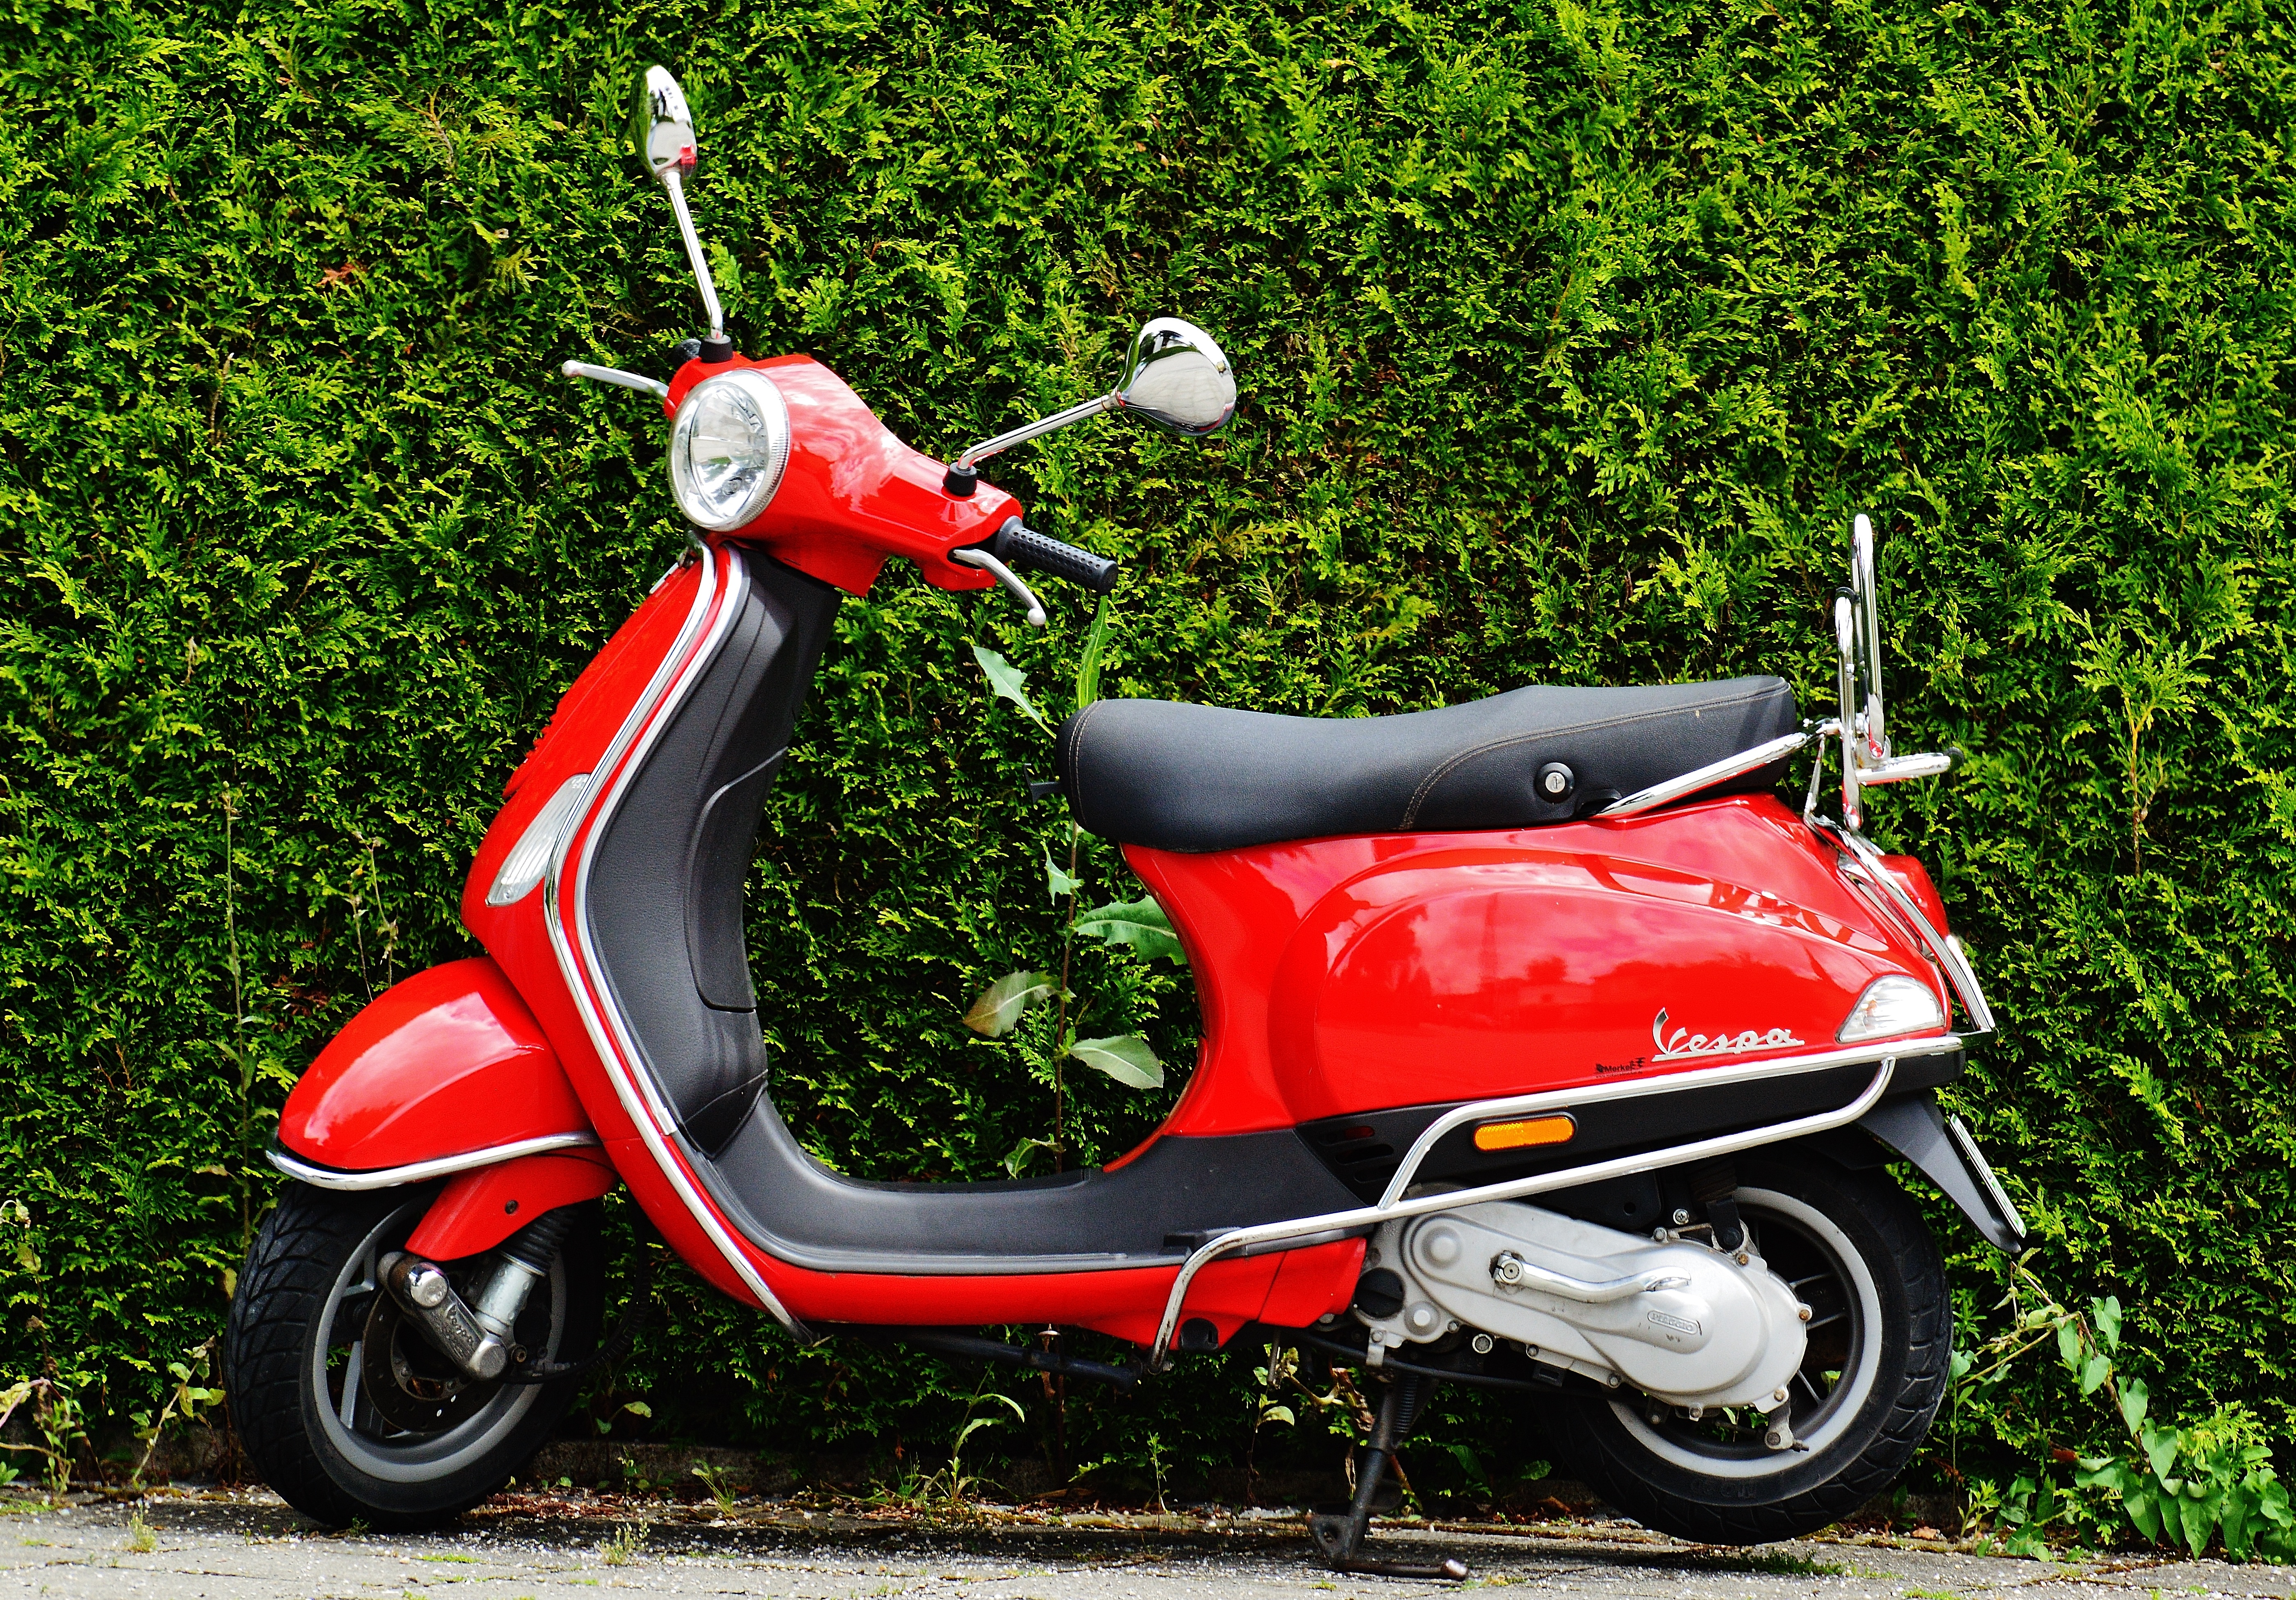 red and black moped scooter beside green grass free stock photo. Black Bedroom Furniture Sets. Home Design Ideas